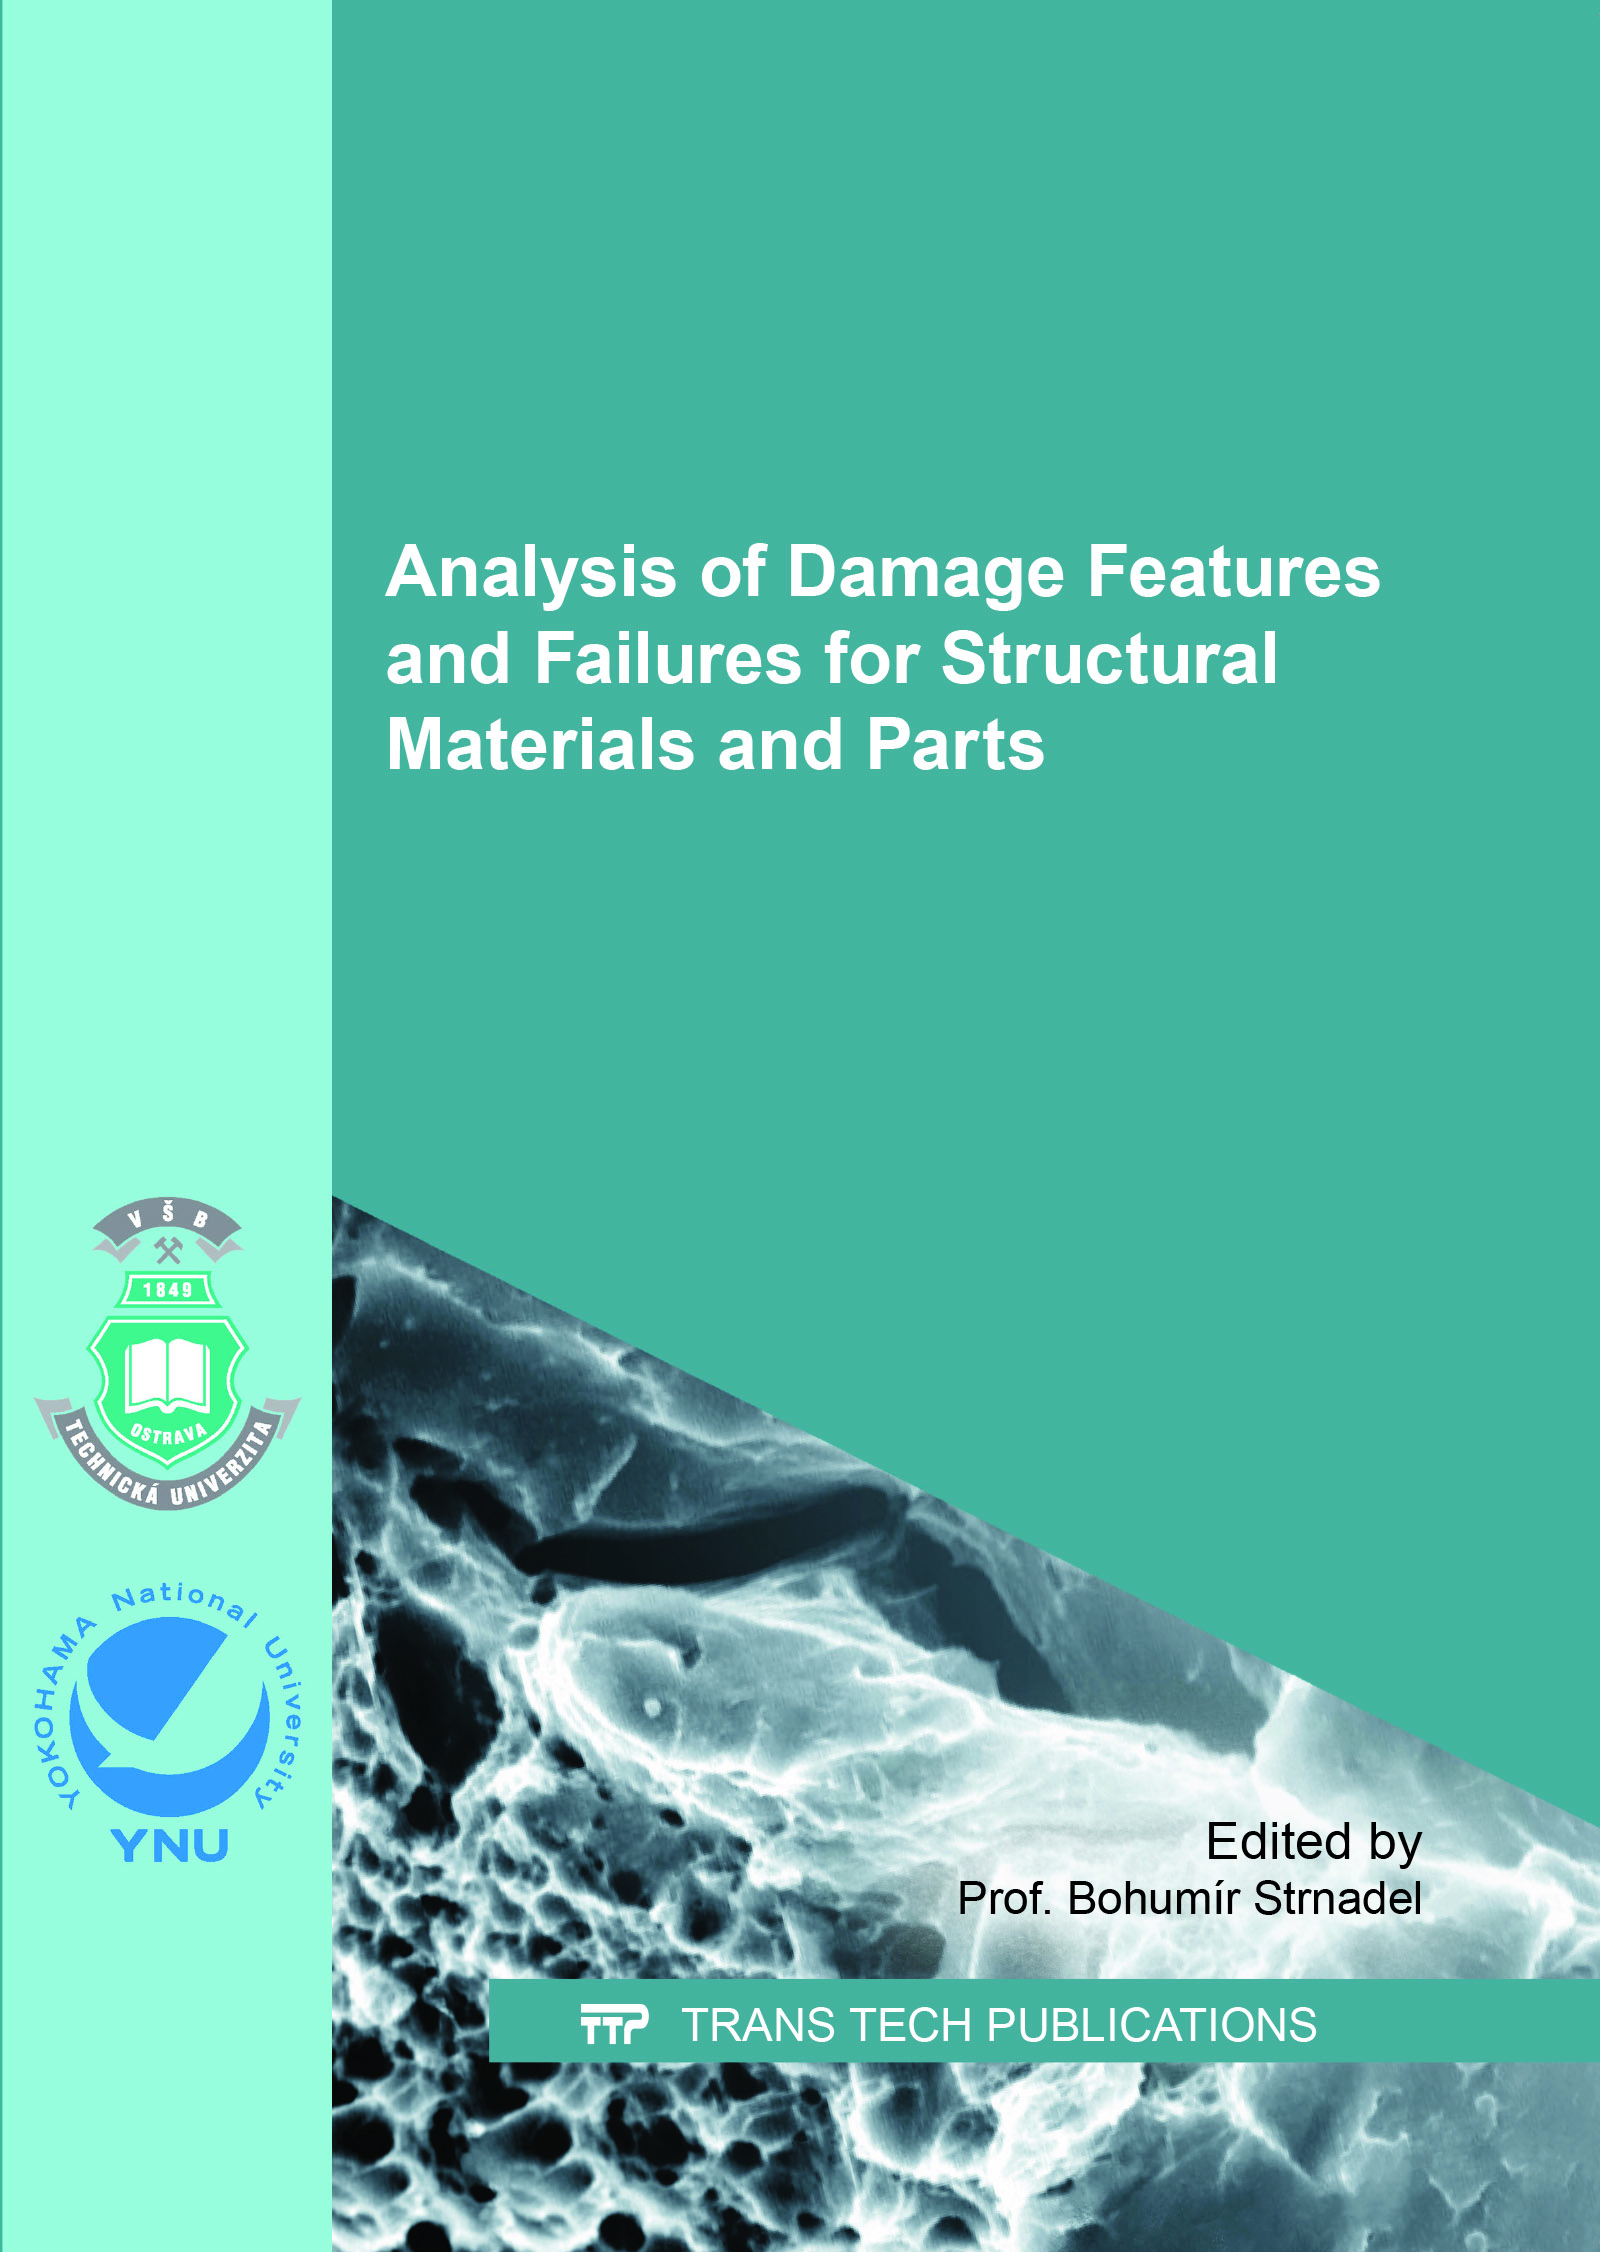 Analysis of Damage Features and Failures for Structural Materials and Parts